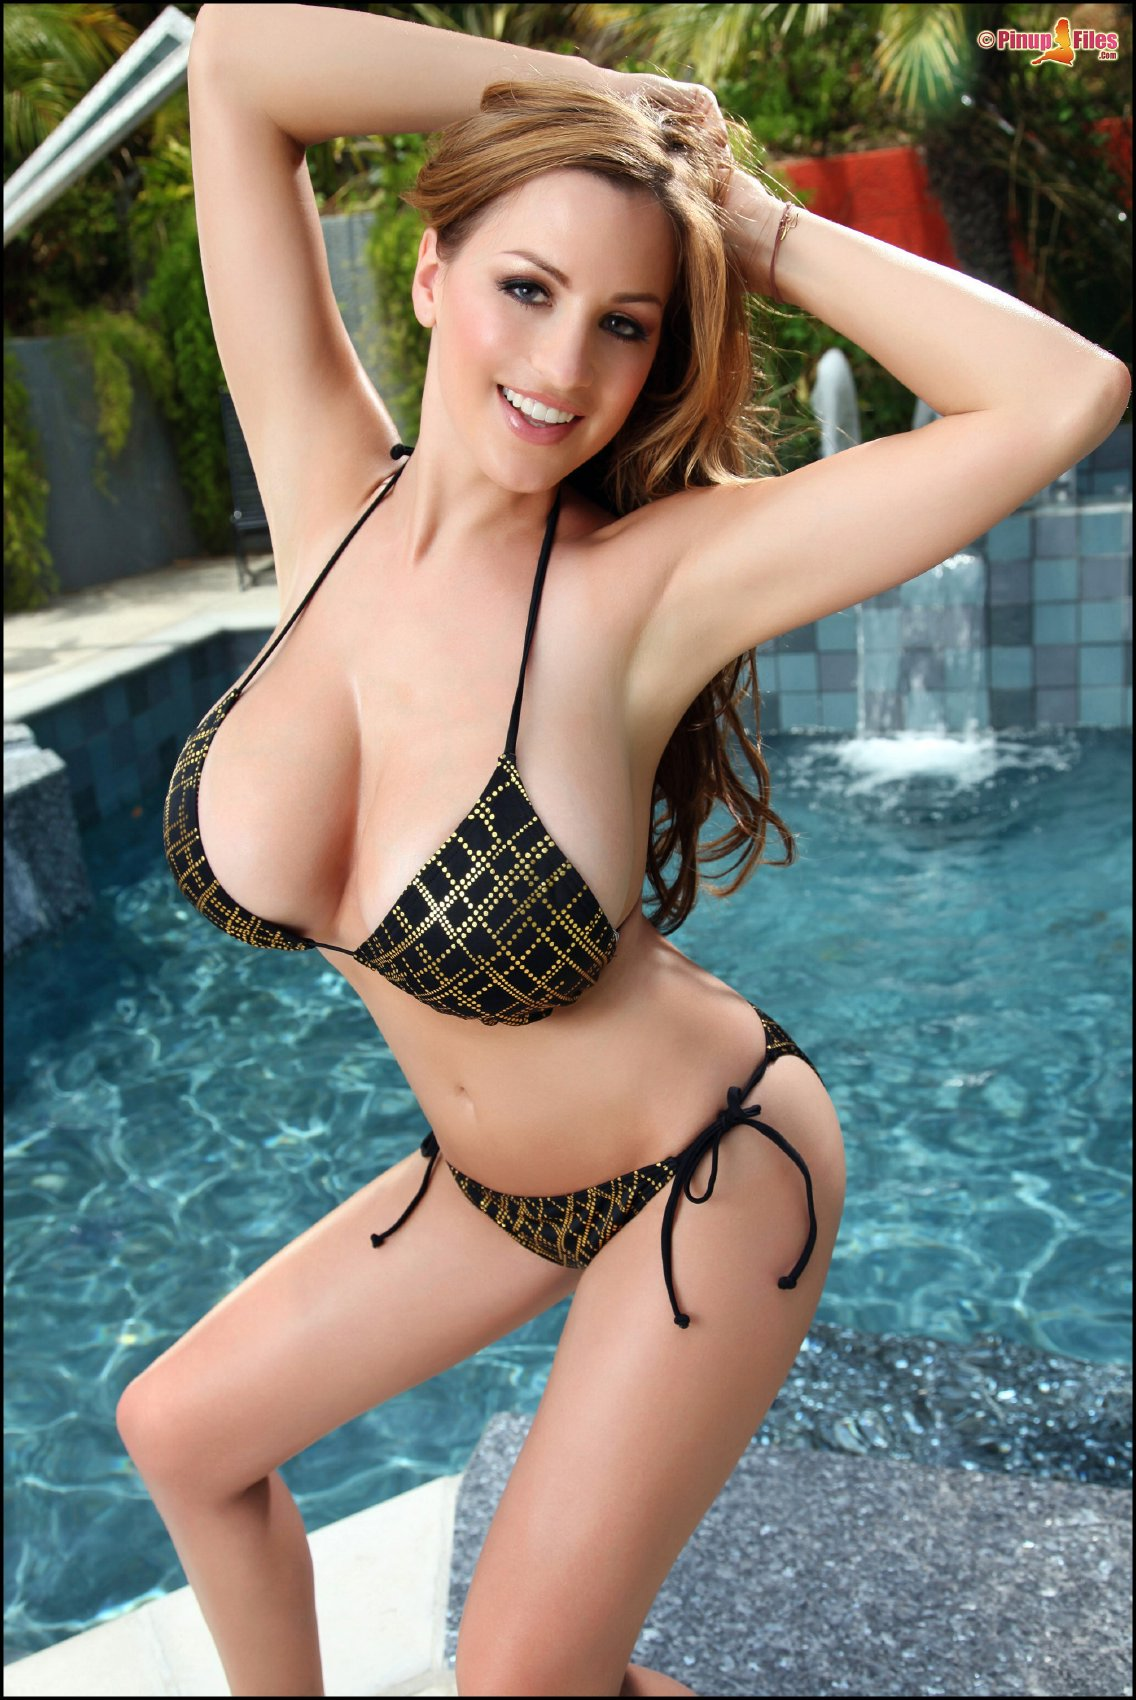 Bikini girl Jordan Carver posing at the poolside - My Pornstar Book